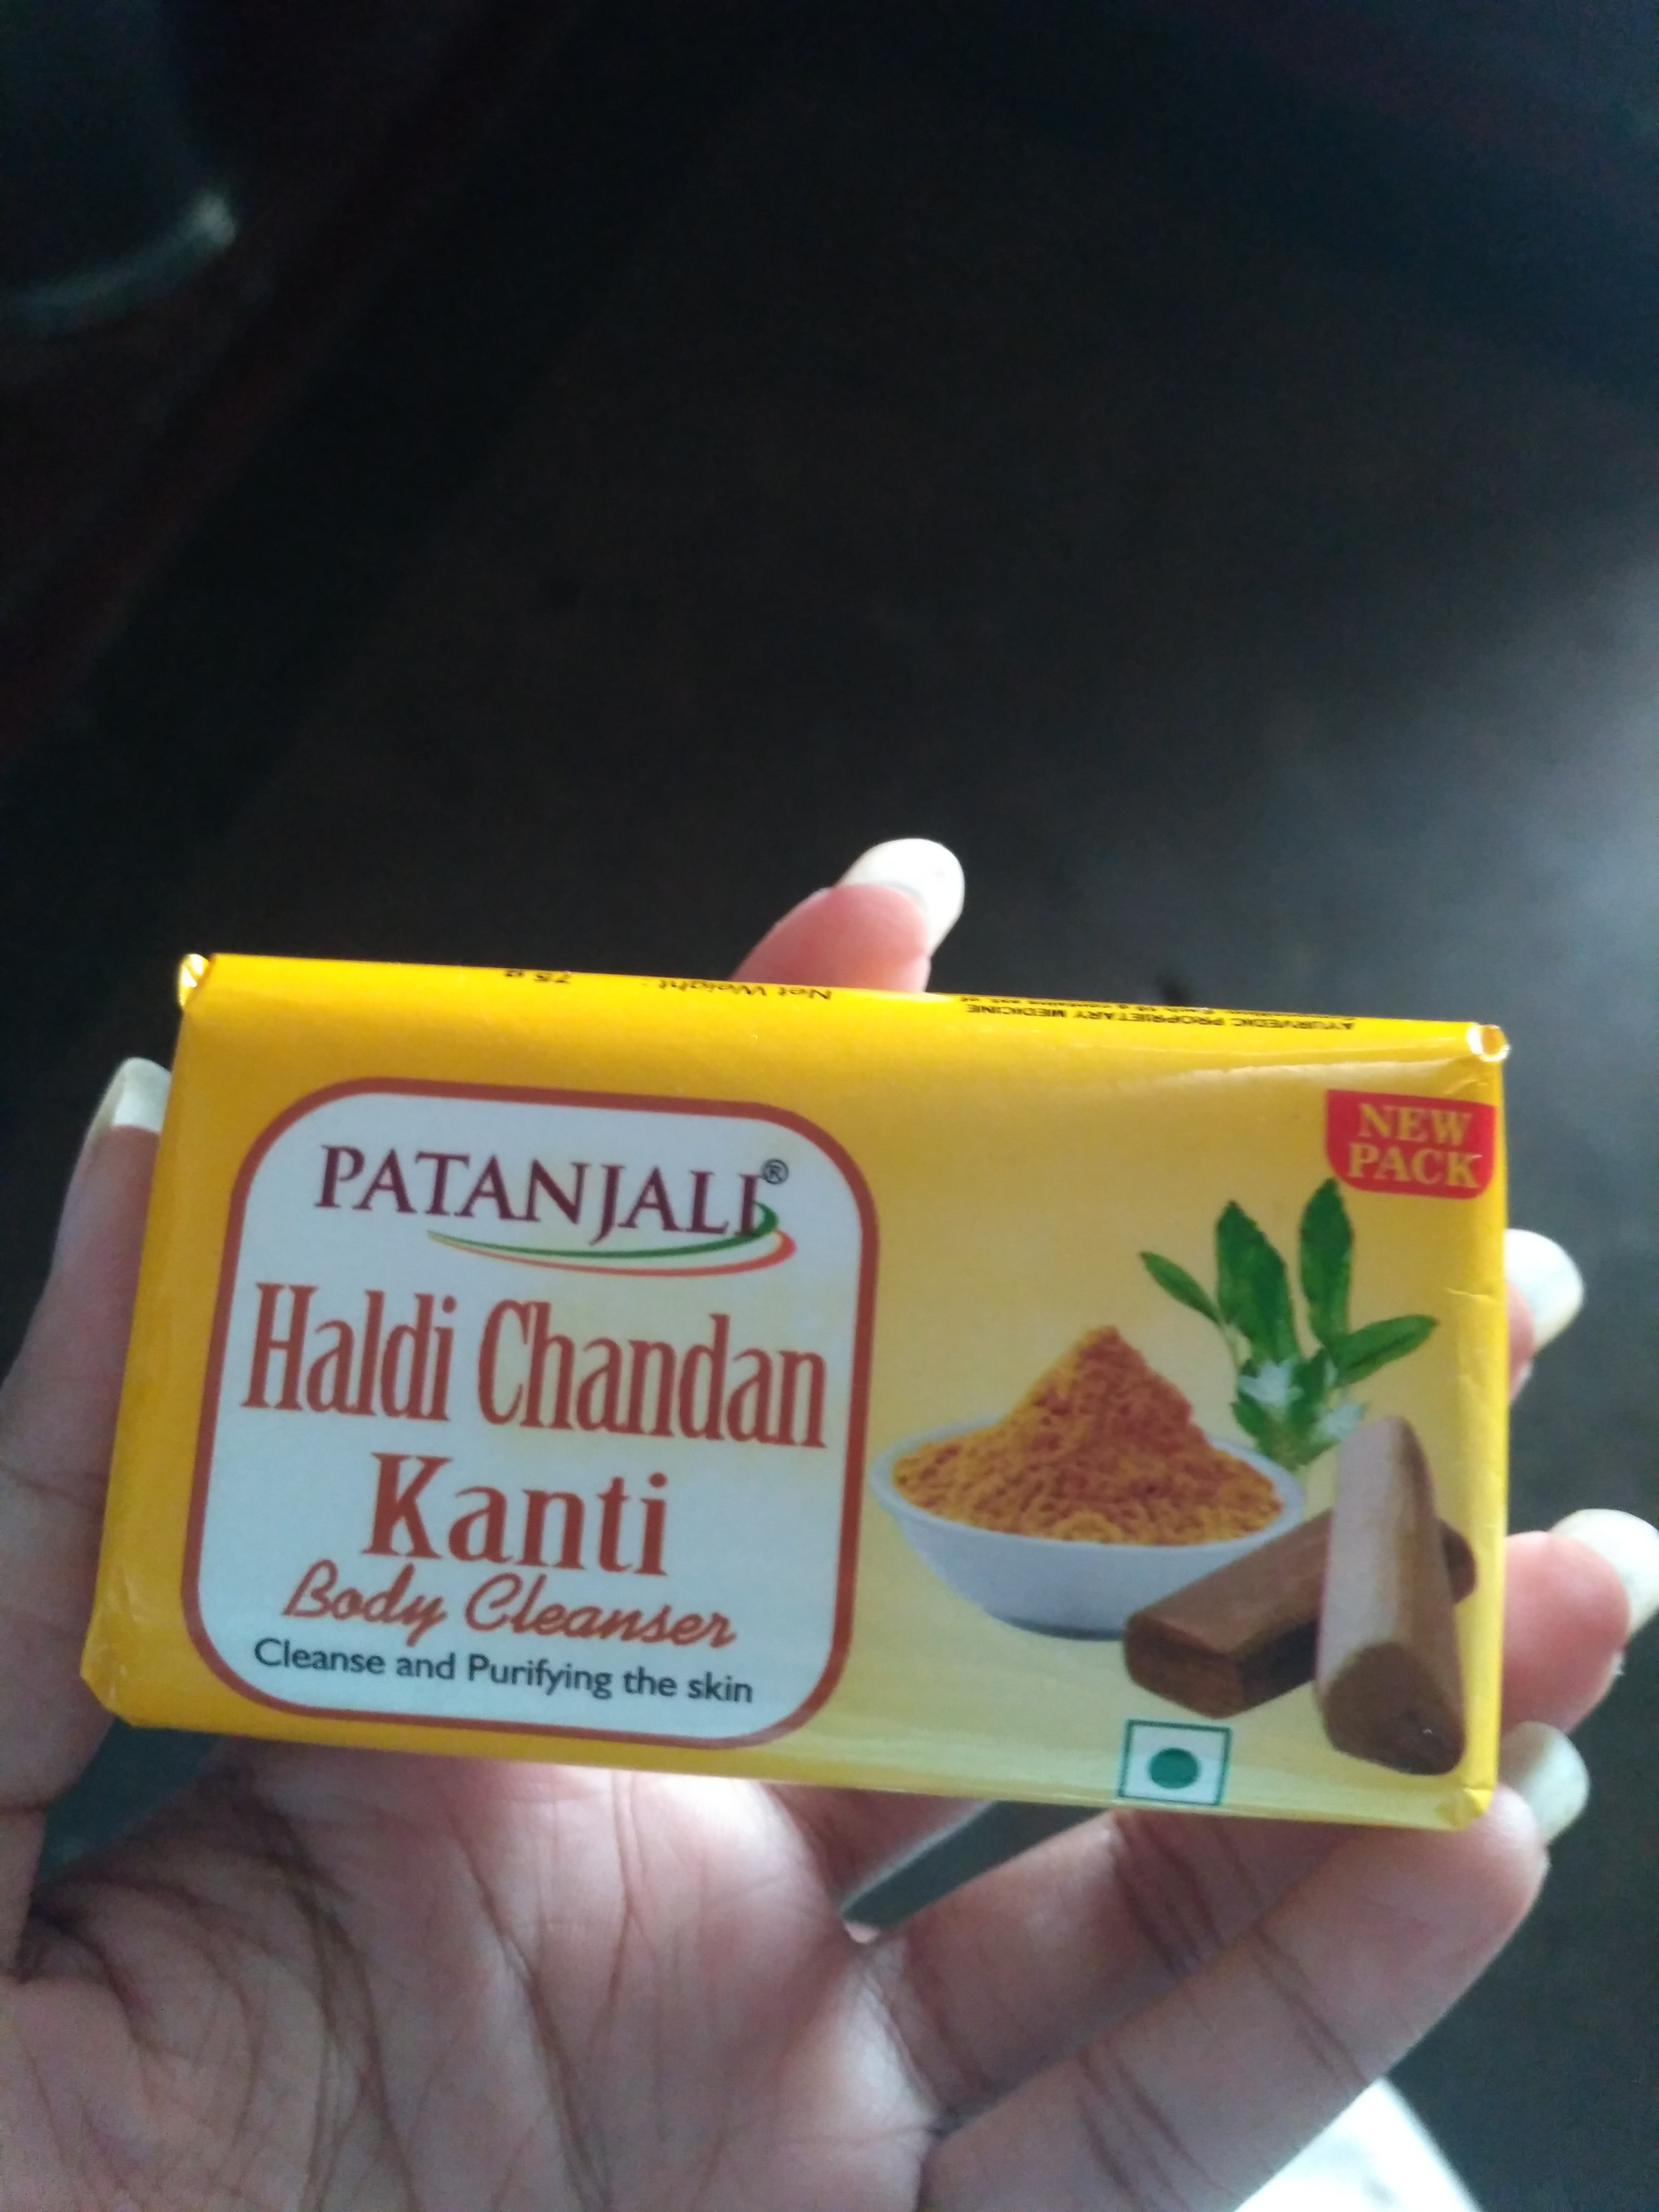 Patanjali Haldi Chandan Kanti Body Cleanser -Mild on skin-By divyani_verma